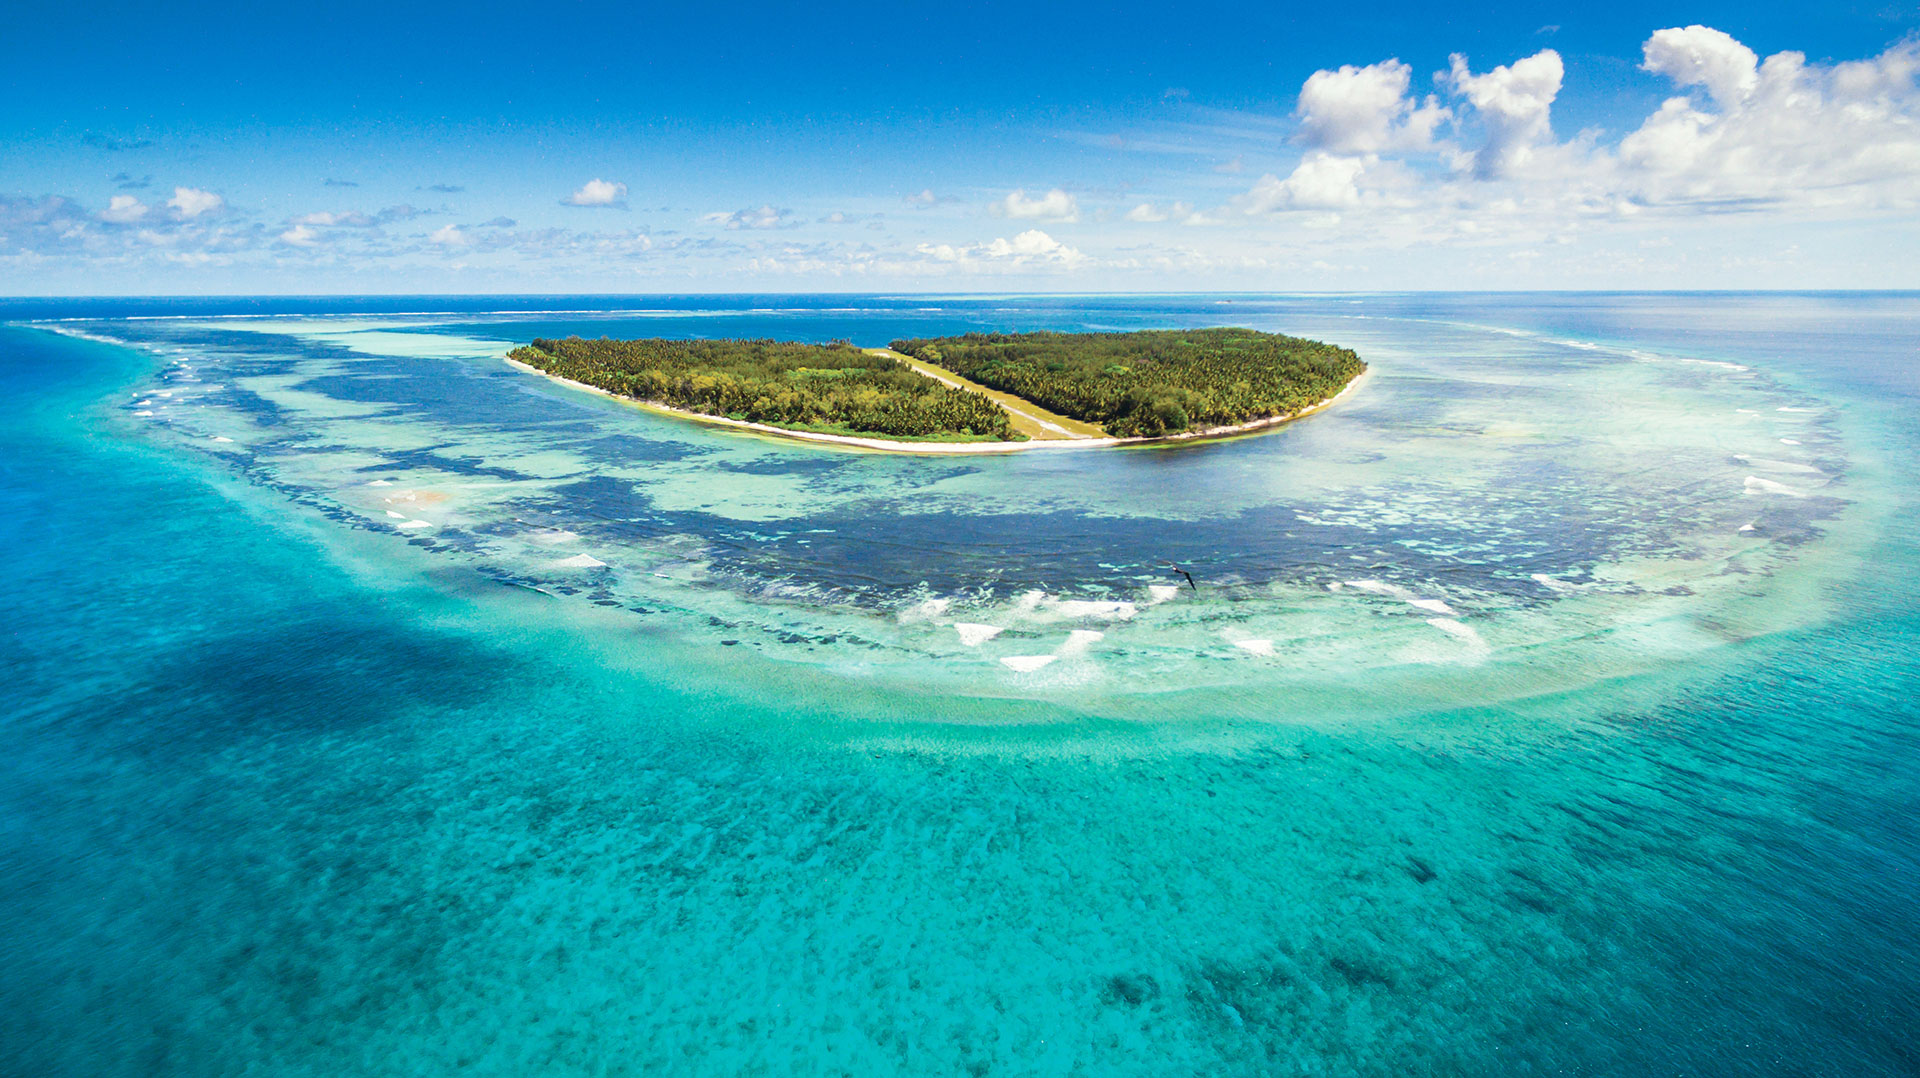 Seychelles ranks first in Sub-Saharan Africa on Environmental Performance Index